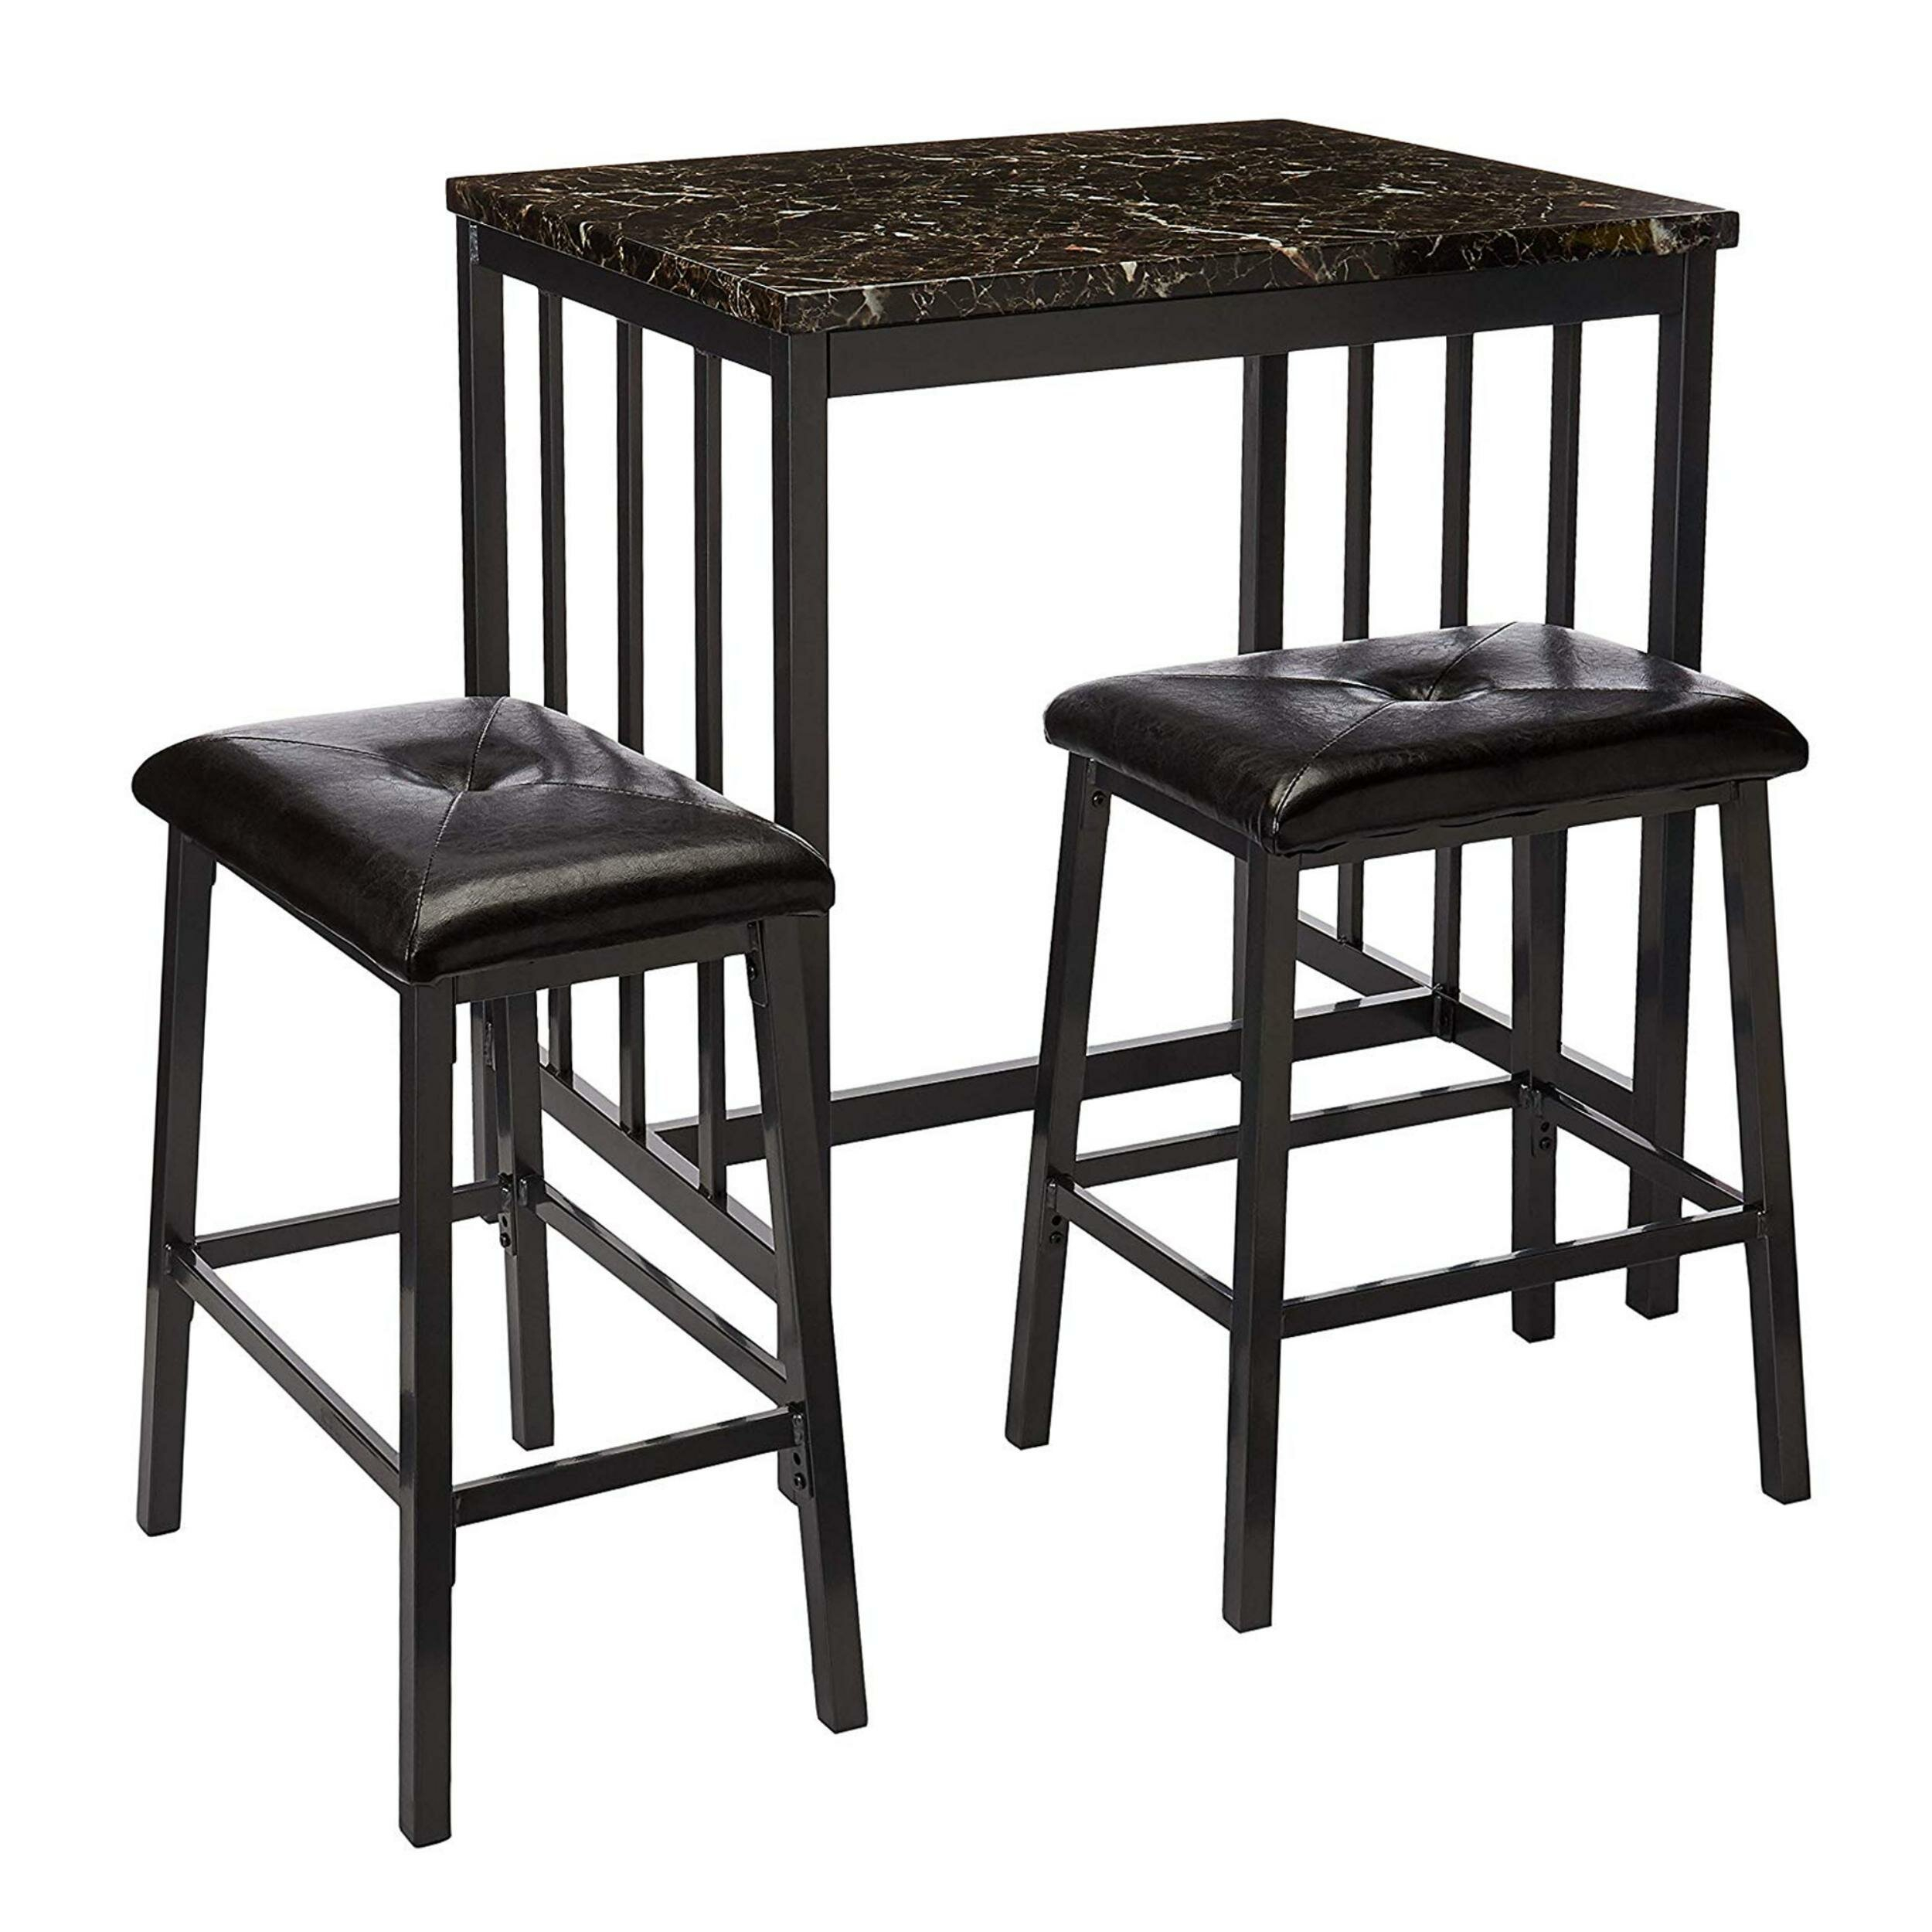 Presson 3 Piece Counter Height Dining Set Inside Most Recently Released Wallflower 3 Piece Dining Sets (Image 13 of 20)